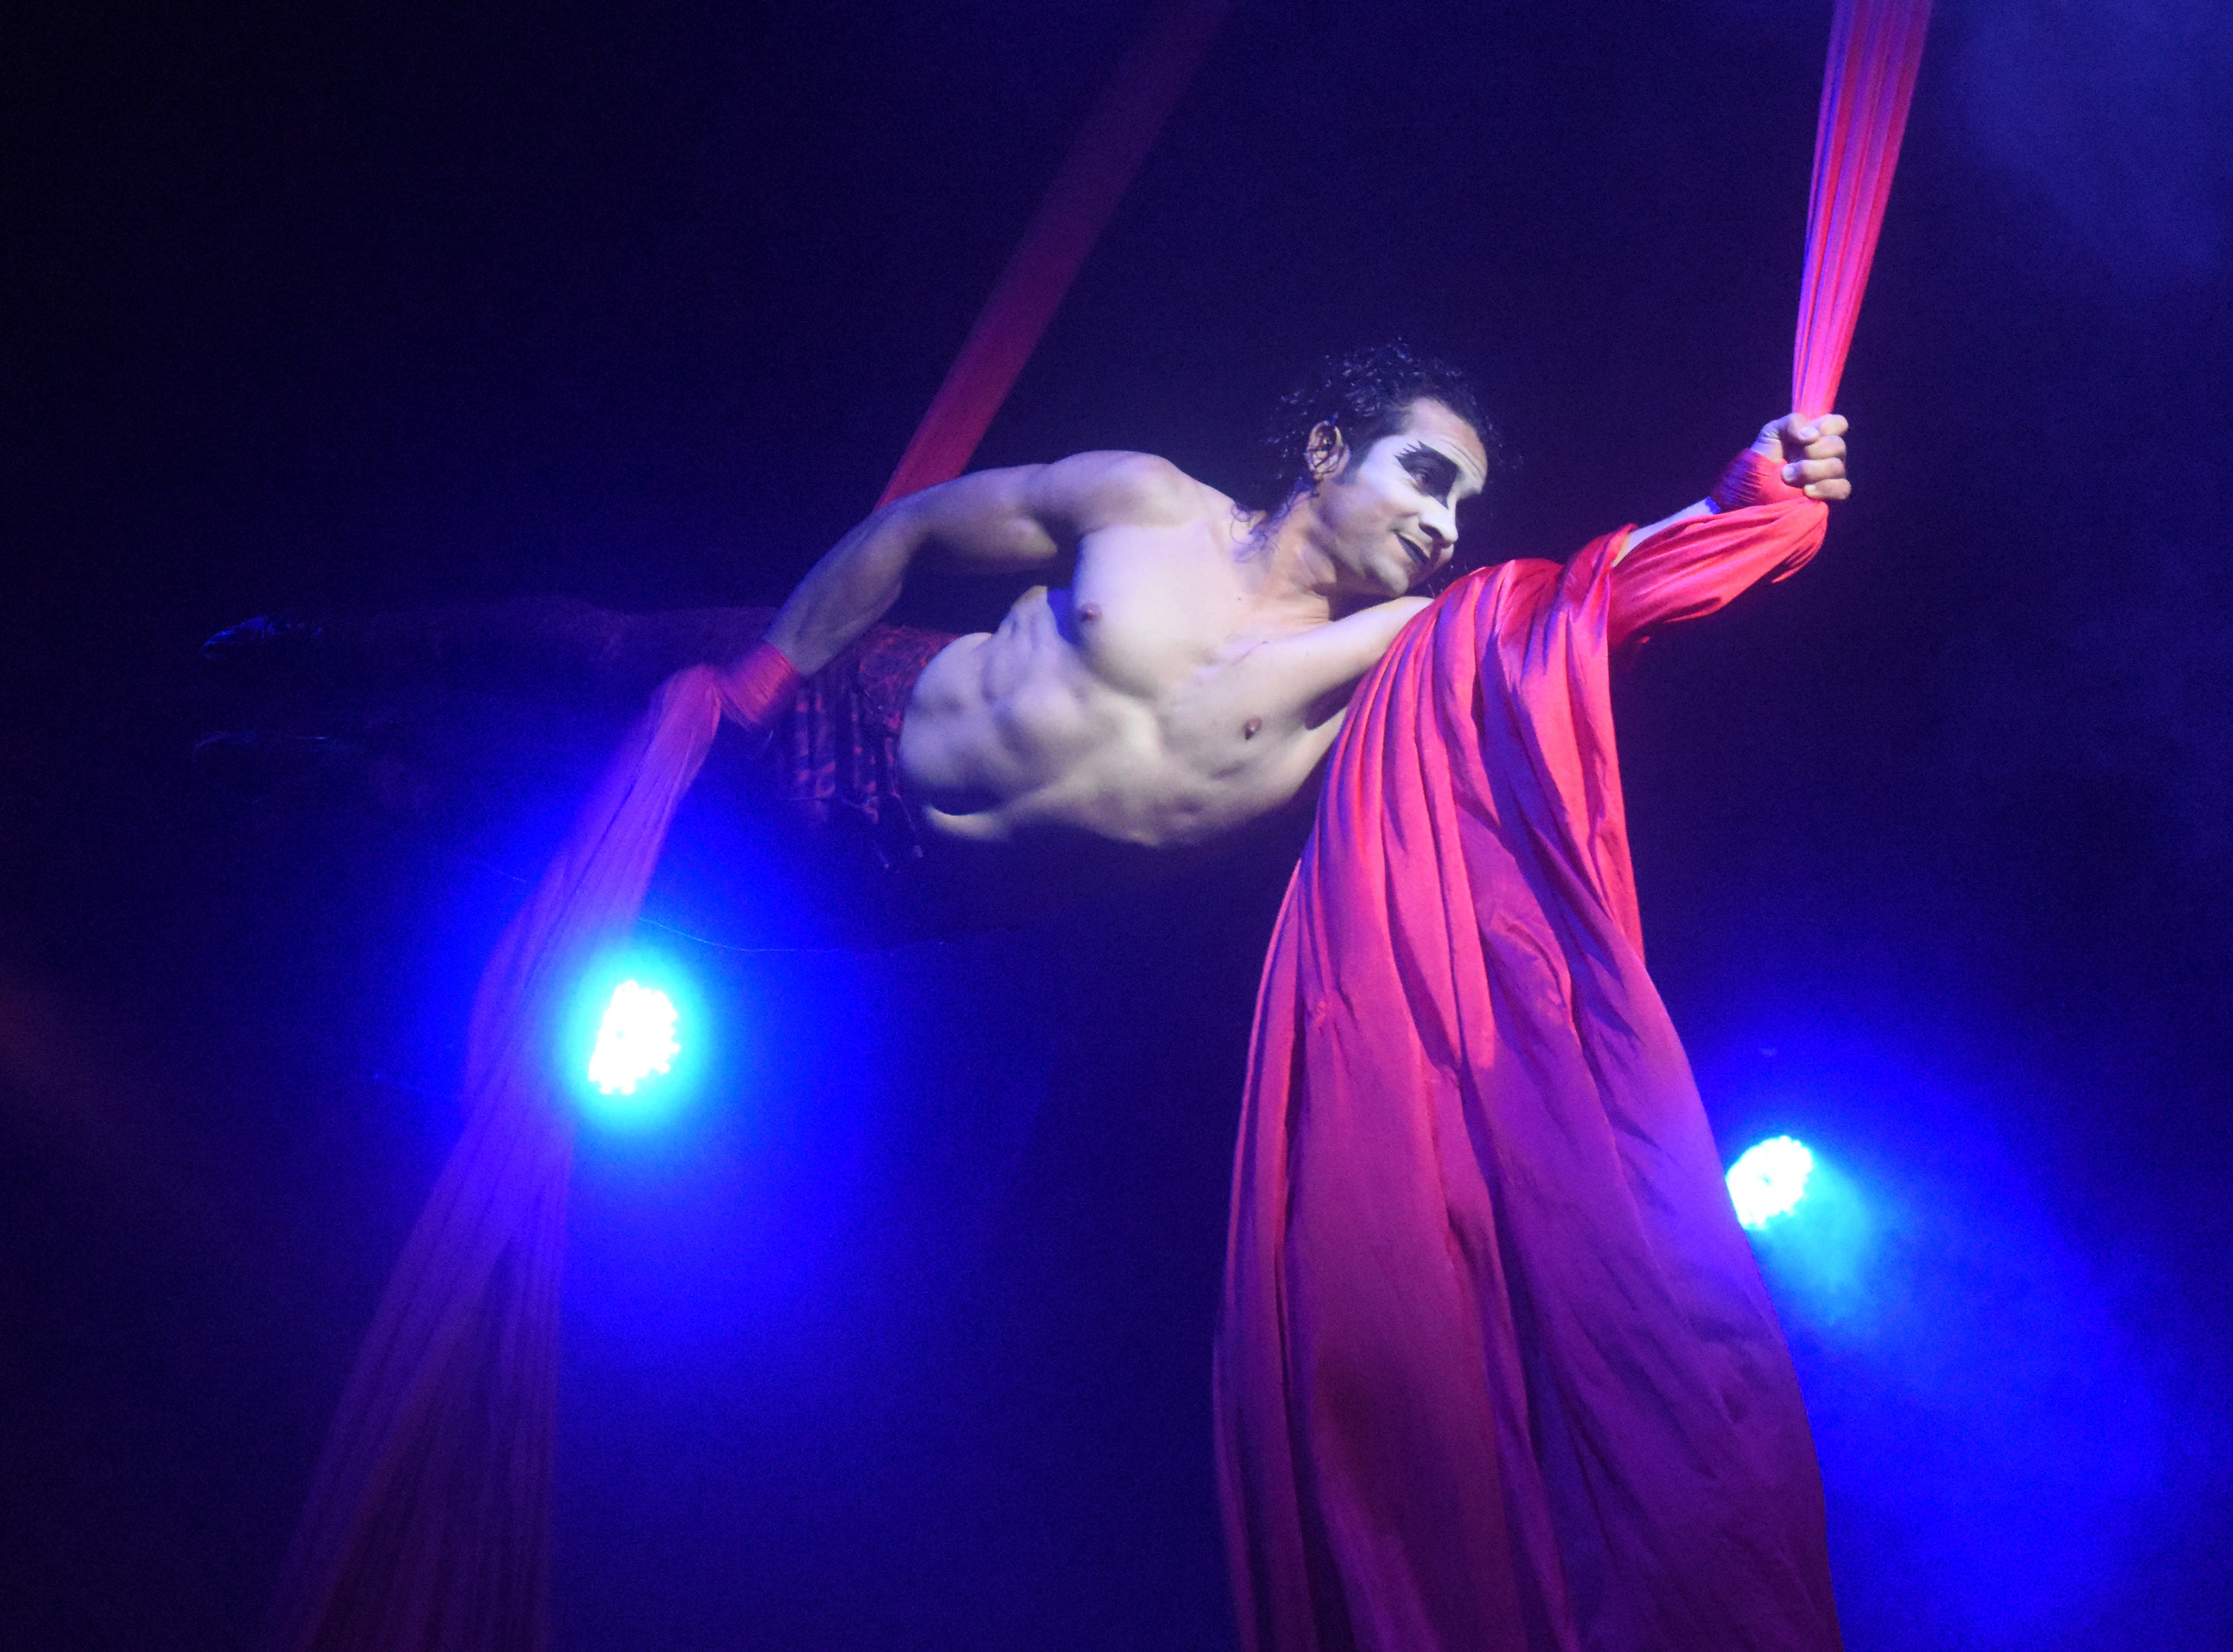 """Jhon Villegas, an aerial acrobat with the """"Paranormal Cirque!"""" performs Thursday, May 9, 2019. """"Paranormal Cirque!"""" has a horror-based theme, features acrobats, magic, theatrical performances and clowns. The show is geared towards adults and no one under the age of 13 is permitted. Those 13-17 years old must be accompanied by an adult. """"Paranormal Cirque!,"""" a presentation of Cirque Italia, has caused controversy with some churches starting a petition to have the Alexandria Mall cancel the performance. The cirque is set up in the parking lot of the Alexandria Mall on Masonic Drive. Another petition was started by other members in the community for the circus to perform as planned. Ticket prices range from $10-50. Audience members interact with performers in an area that is set up like a horror house prior to entering the main tent for the performance. There is audience interaction during the show. Performances continue Friday with two performances at 5:30 p.m. and 7:30 p.m.; Saturday at 5;30 p.m., 6:30 p.m. and 7:30 p.m.; and Sunday at 5:30 p.m.; and 8:30 p.m. For more information visit, www.paranormalcirque.com."""